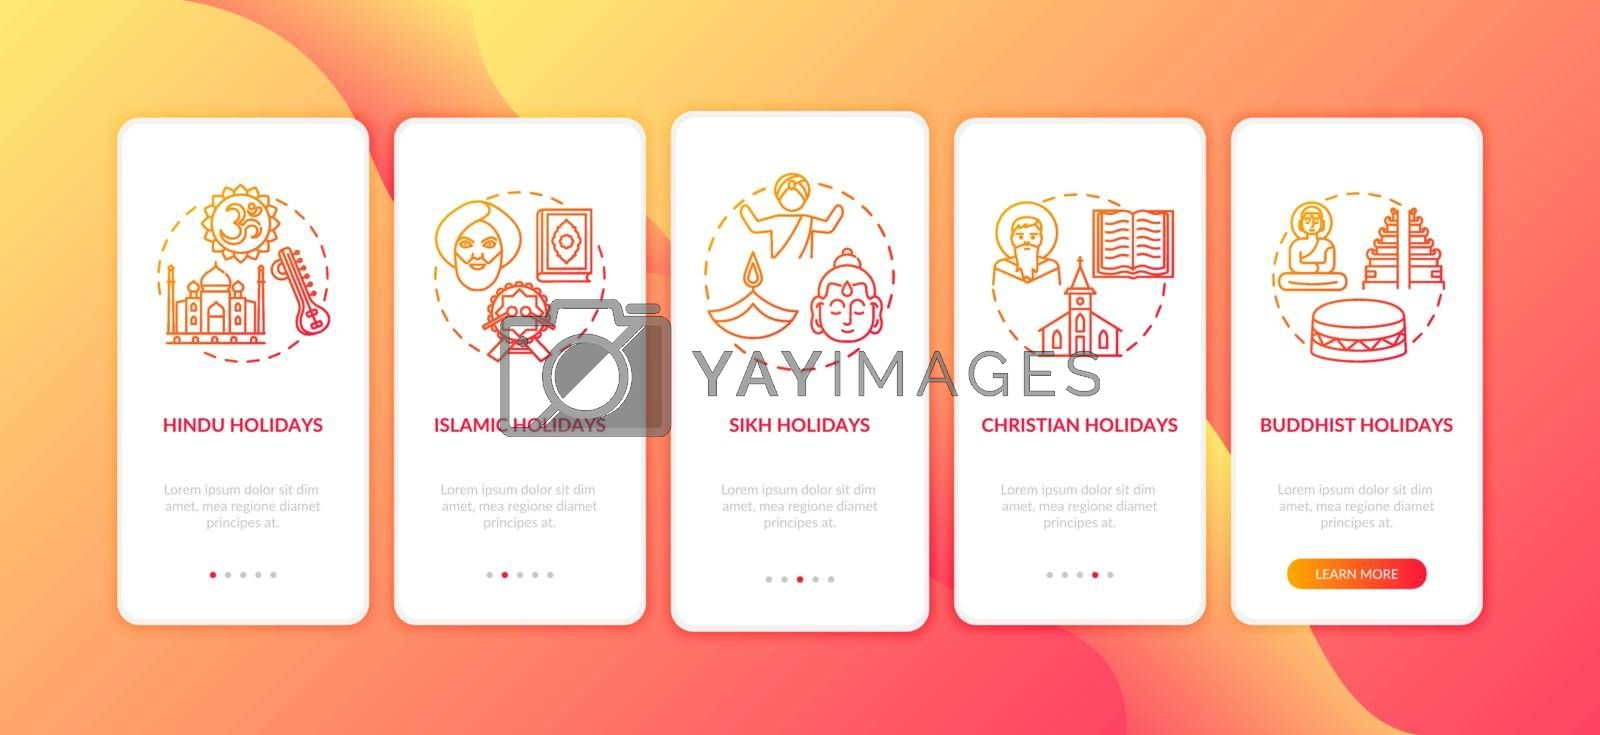 Indian religious holidays onboarding mobile app page screen with concepts. Buddhist holidays. Walkthrough 5 steps graphic instructions. UI vector template with RGB color illustrations